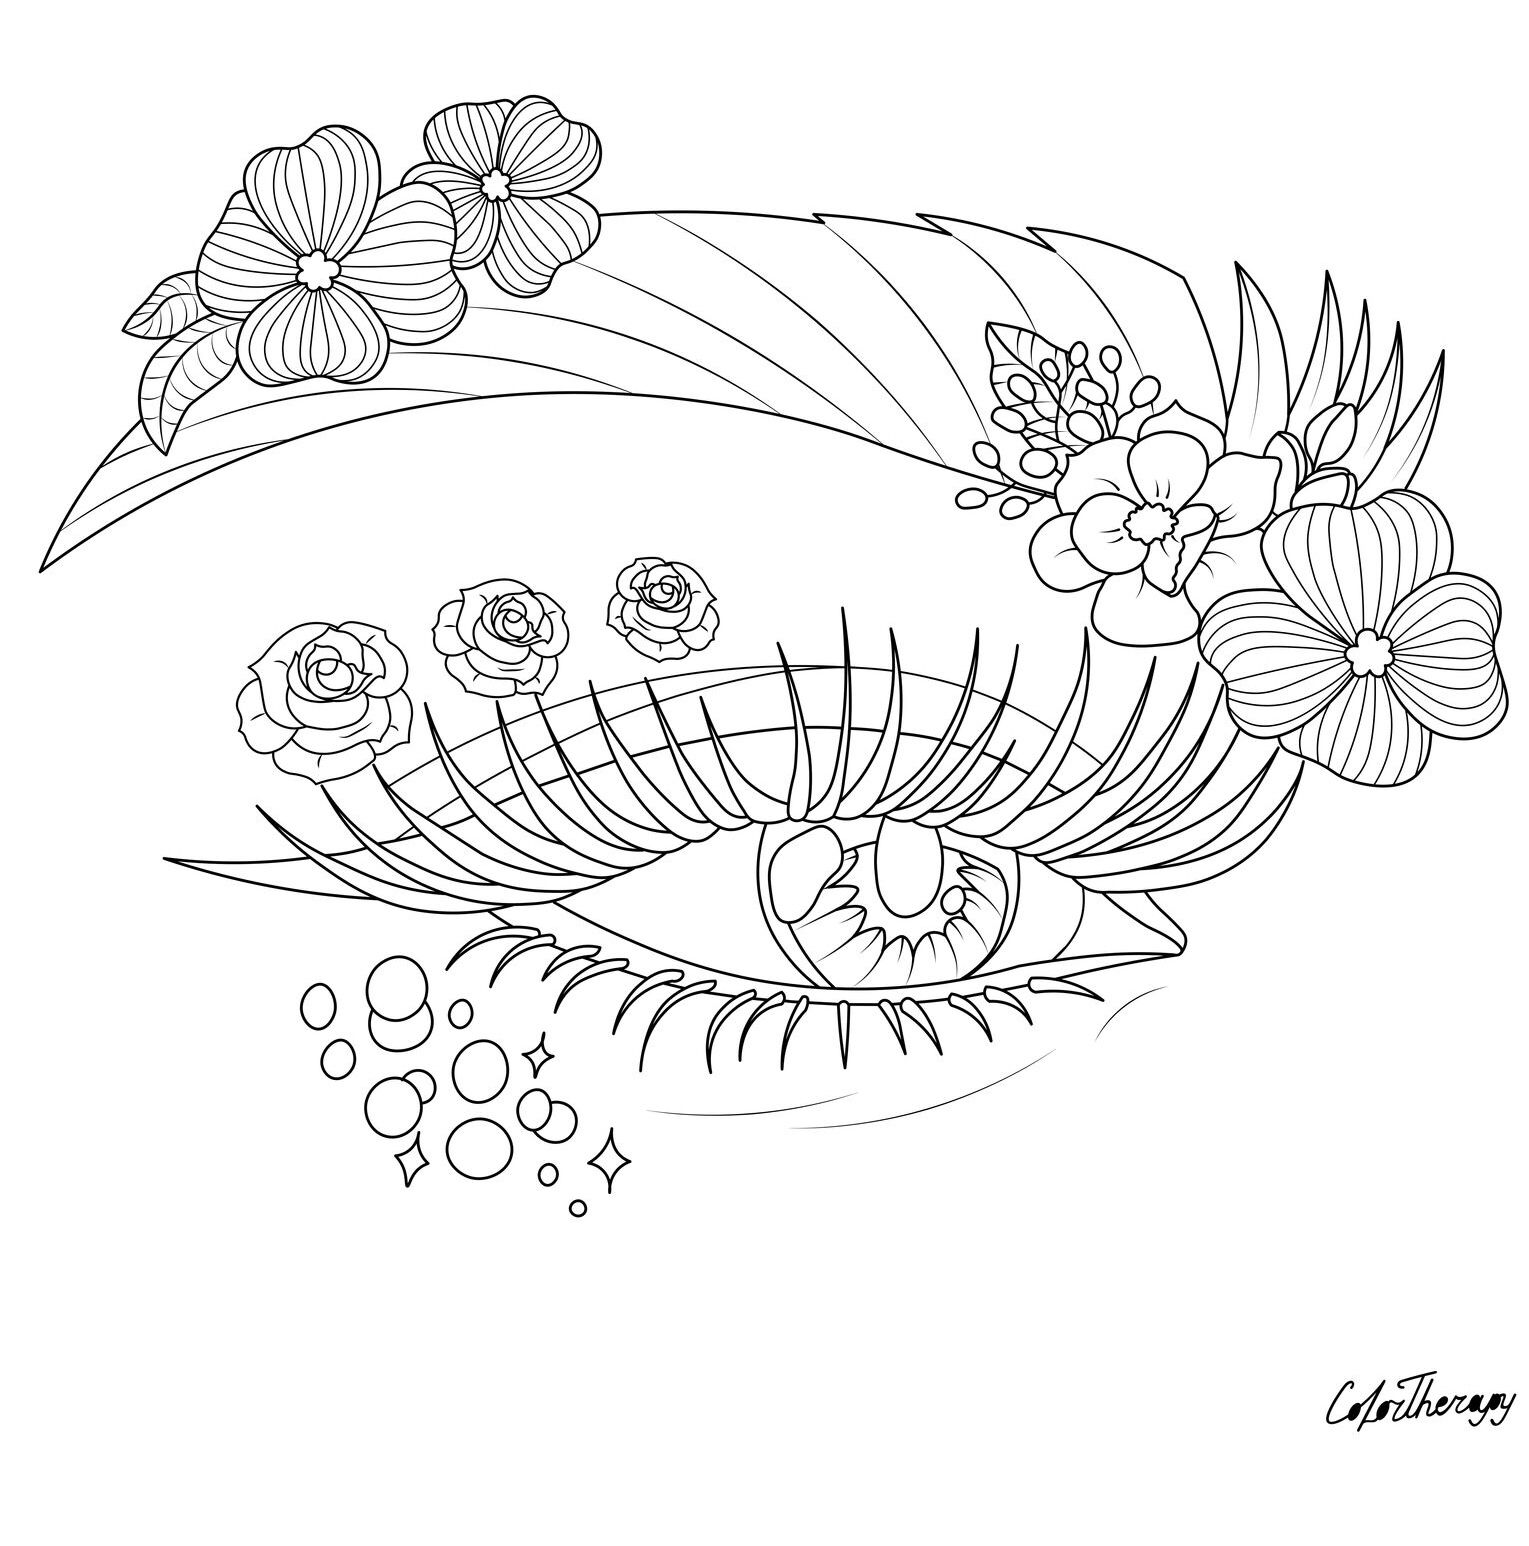 The Sneak Peek For The Next Gift Of The Day Tomorrow Do You Like This One Eye Flowers Makeup Coloring Pages Fairy Coloring Pages Tattoo Coloring Book